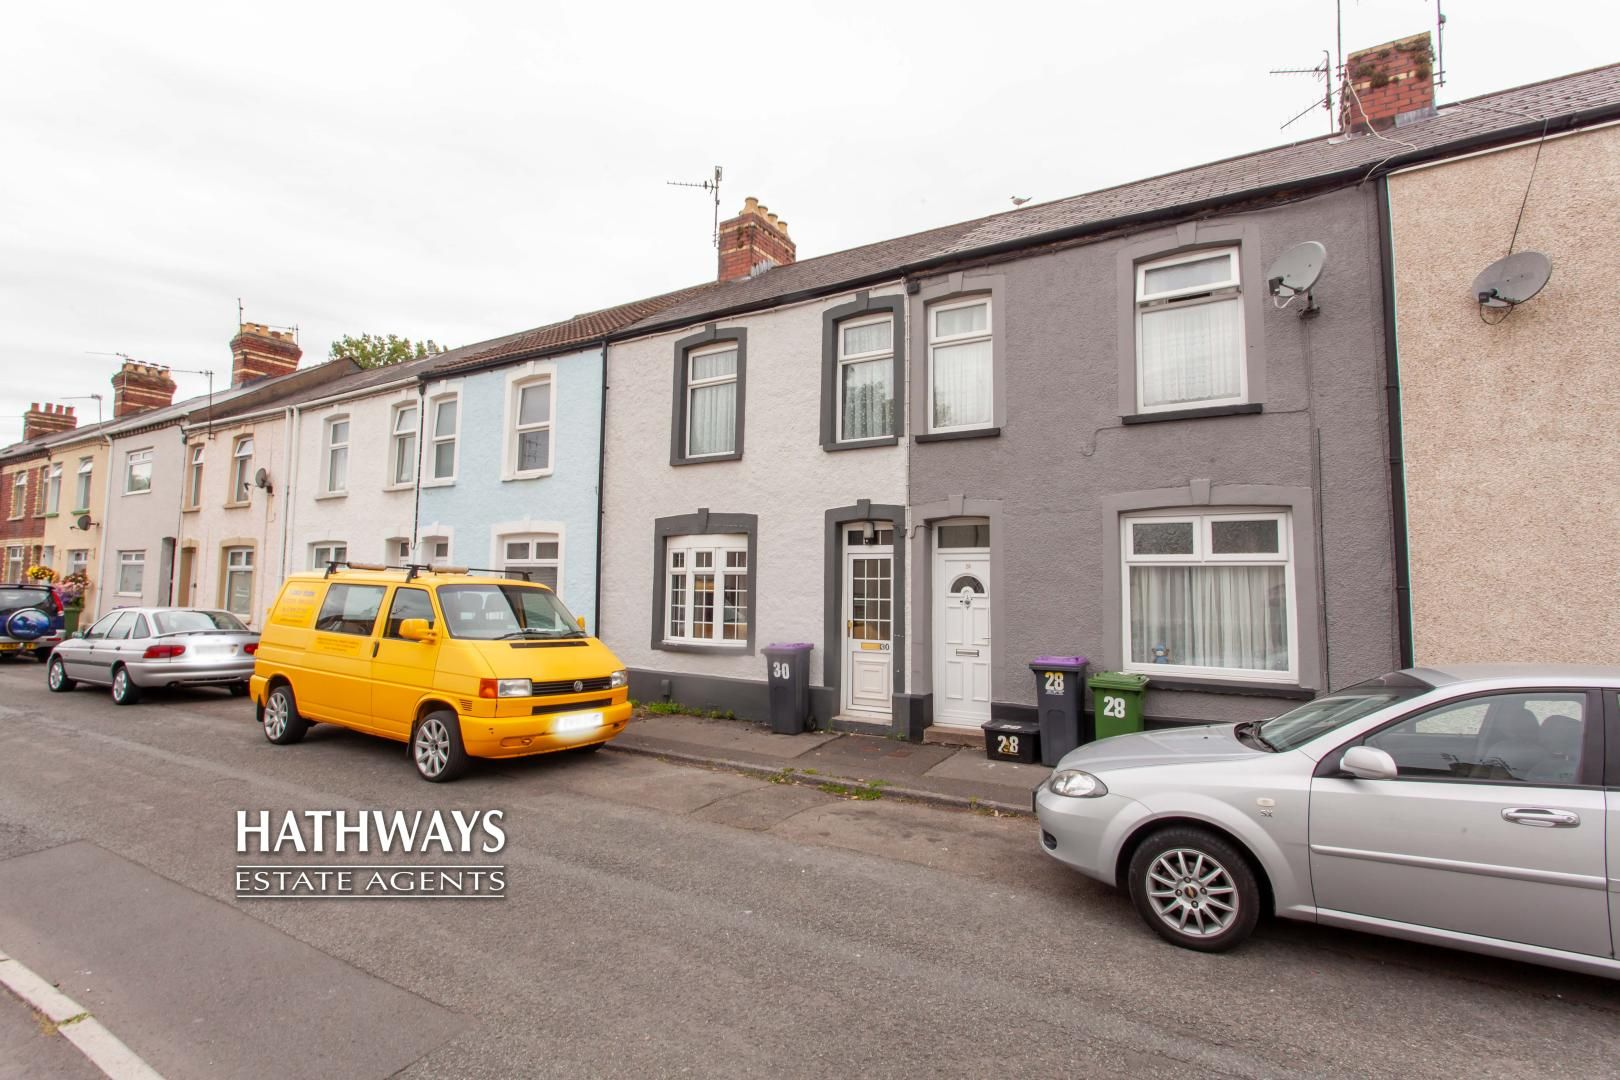 3 bed house for sale in Star Street, NP44